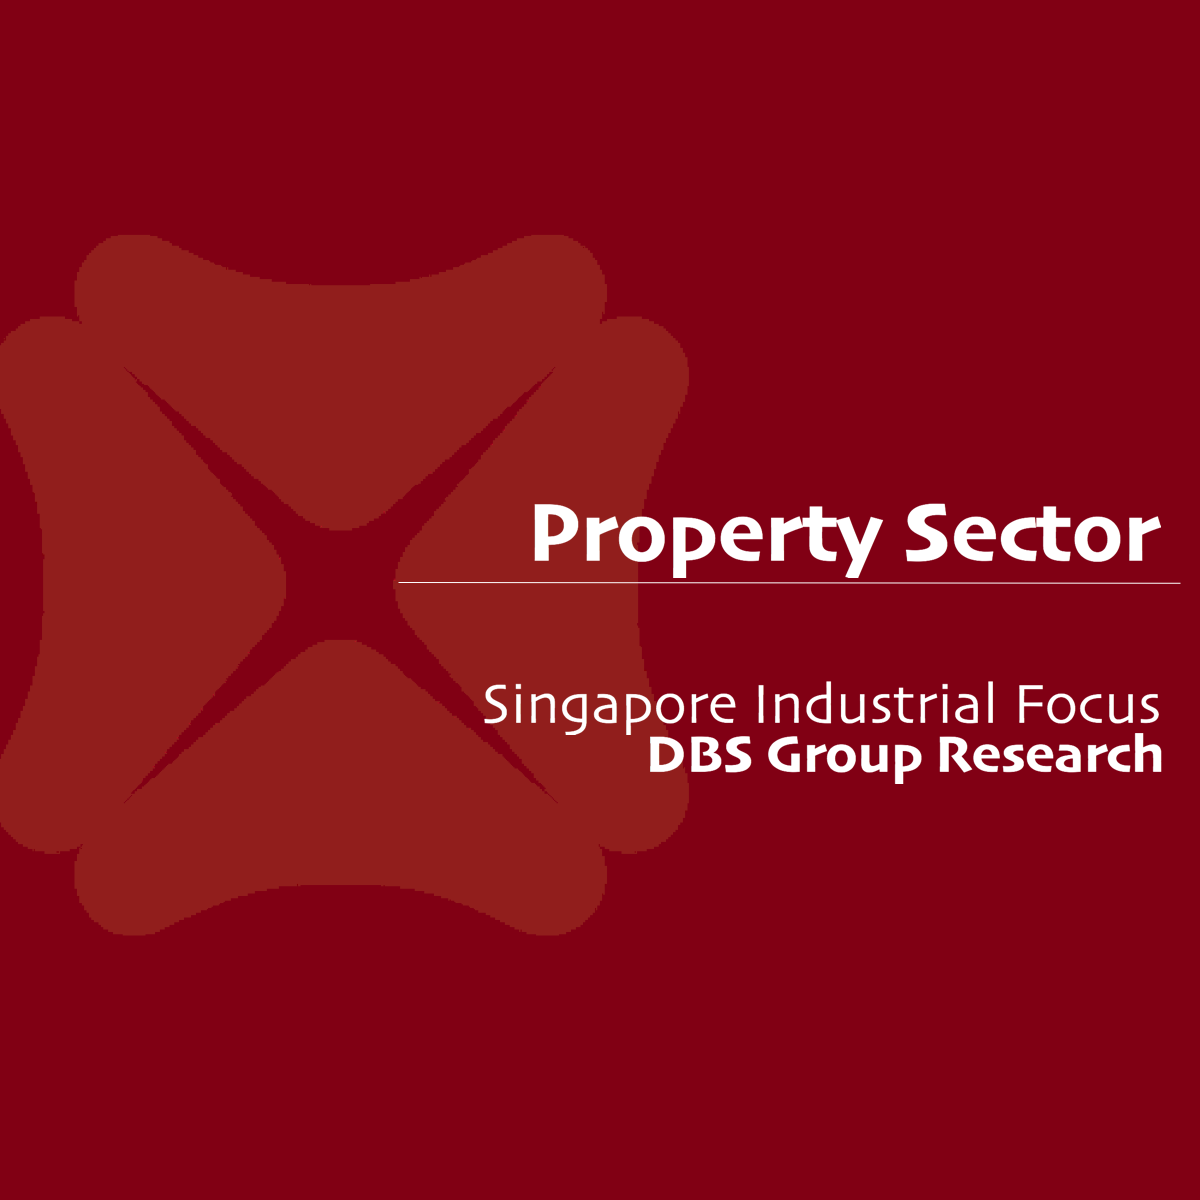 Singapore Property & REITs - DBS Vickers 2017-08-28: Firmer Fundamentals